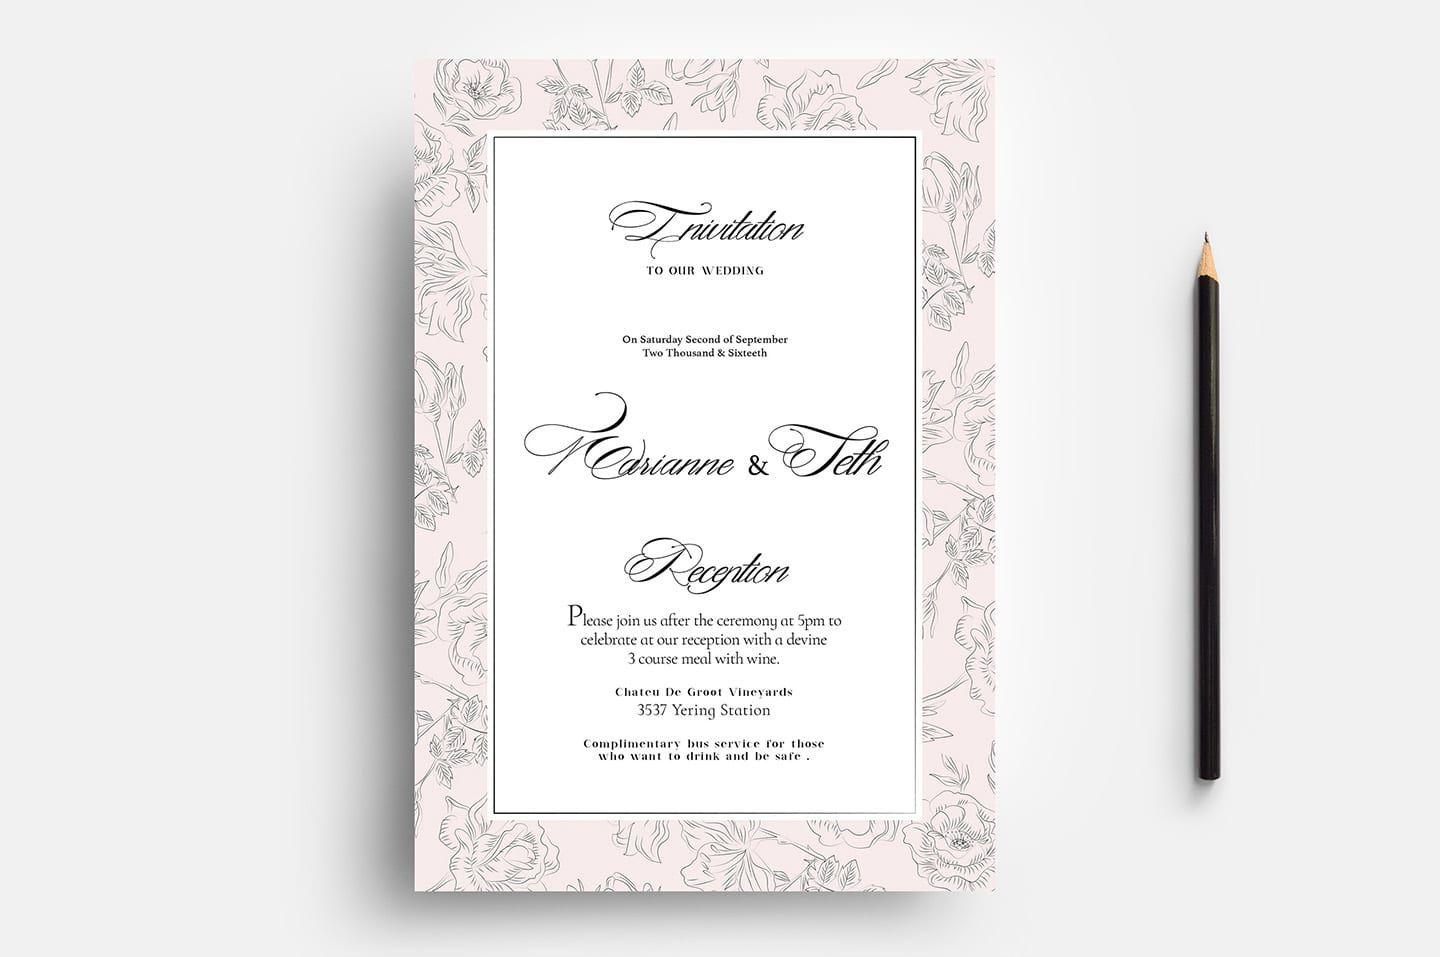 007 Outstanding Wedding Order Of Service Template Free Download Idea  Downloadable That Can Be PrintedFull